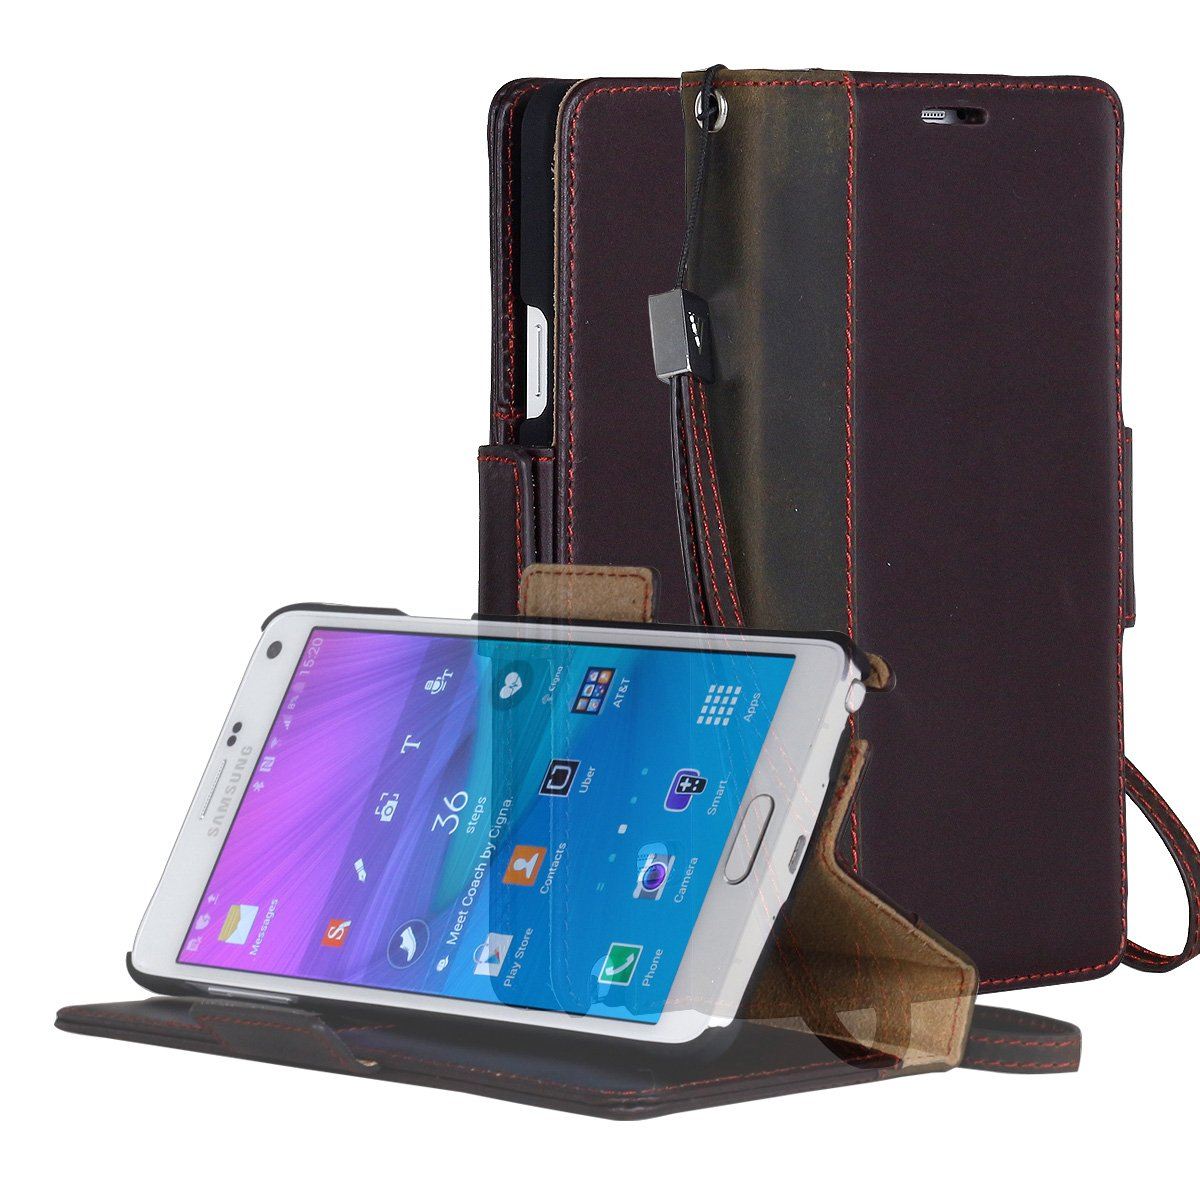 Galaxy Note 4 Case, AceAbove Samsung Galaxy Note 4 Wallet Case - Premium Genuine Leather Wallet Book Cover with Stand Flip Cover and Hand Strap